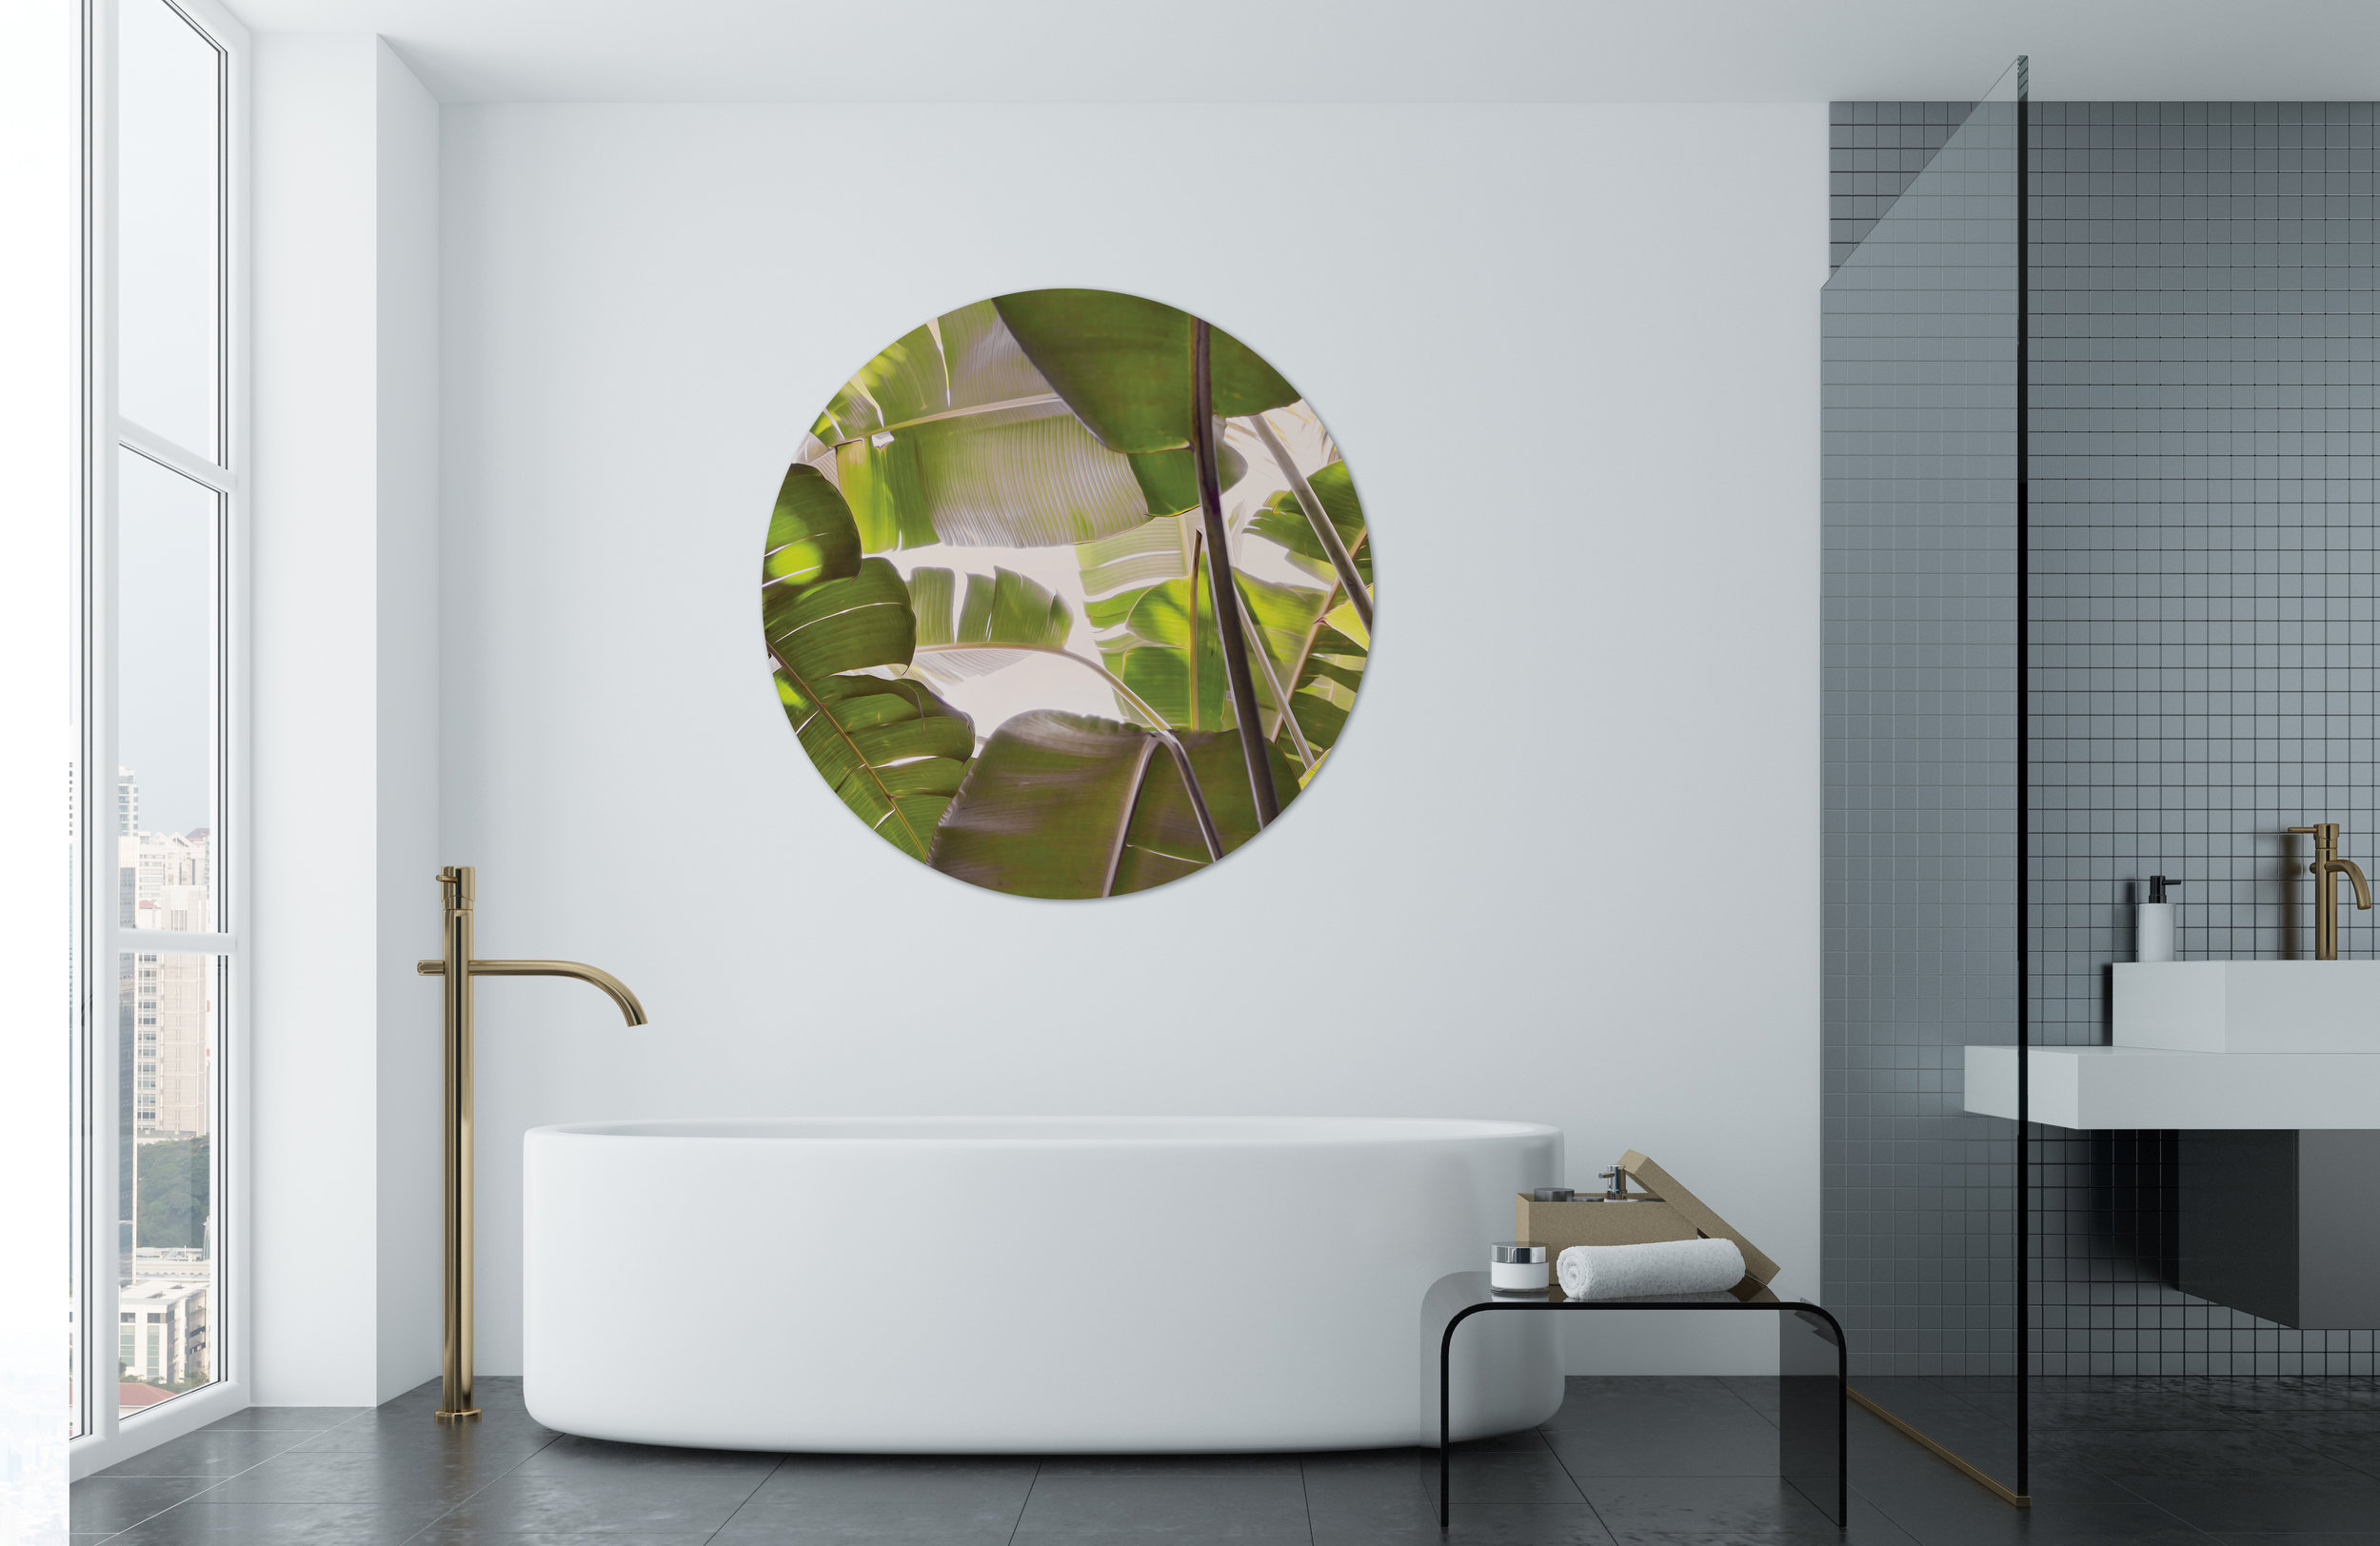 Tropical  Banana Palm  circular glass wall artwork 1200mm diameter circular.